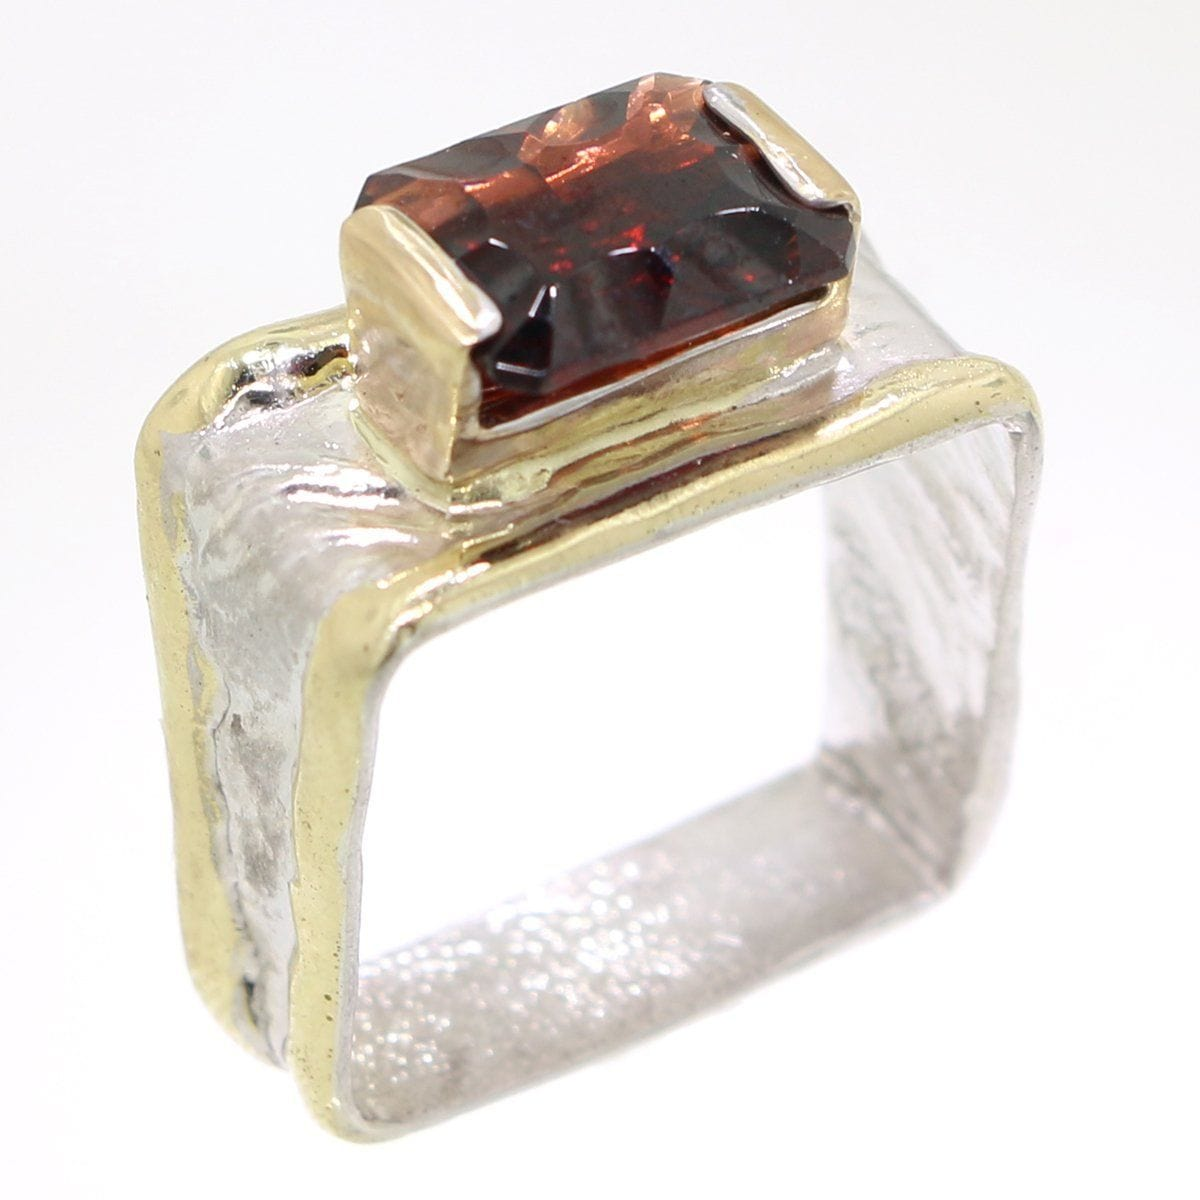 14K Gold & Crystalline Silver Garnet Ring - 31974-Fusion Designs-Renee Taylor Gallery